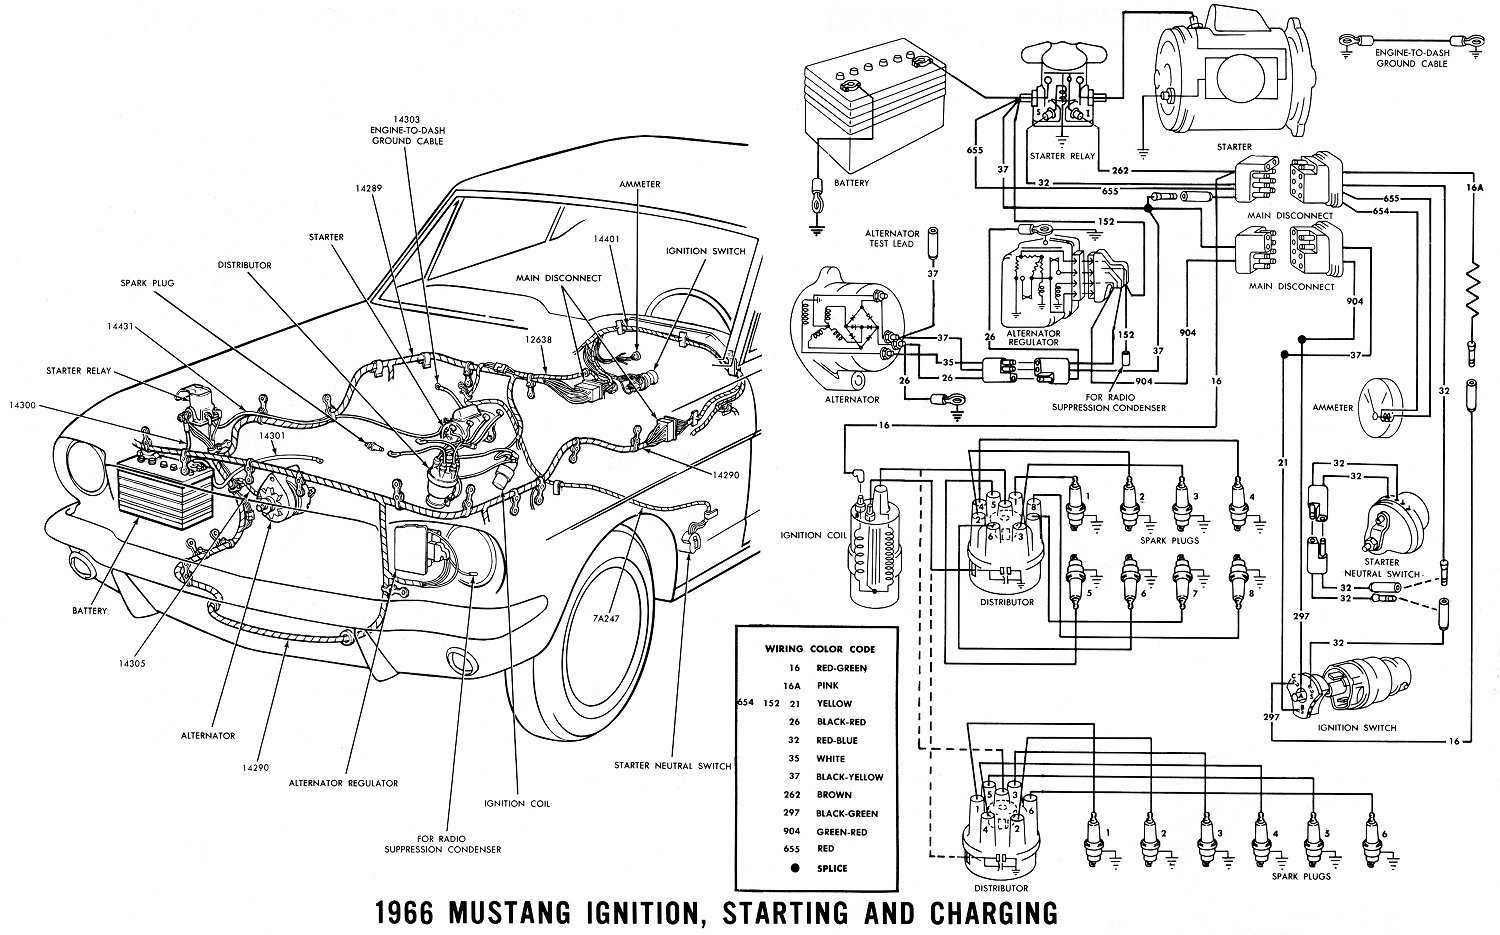 1986 mustang gt engine diagram